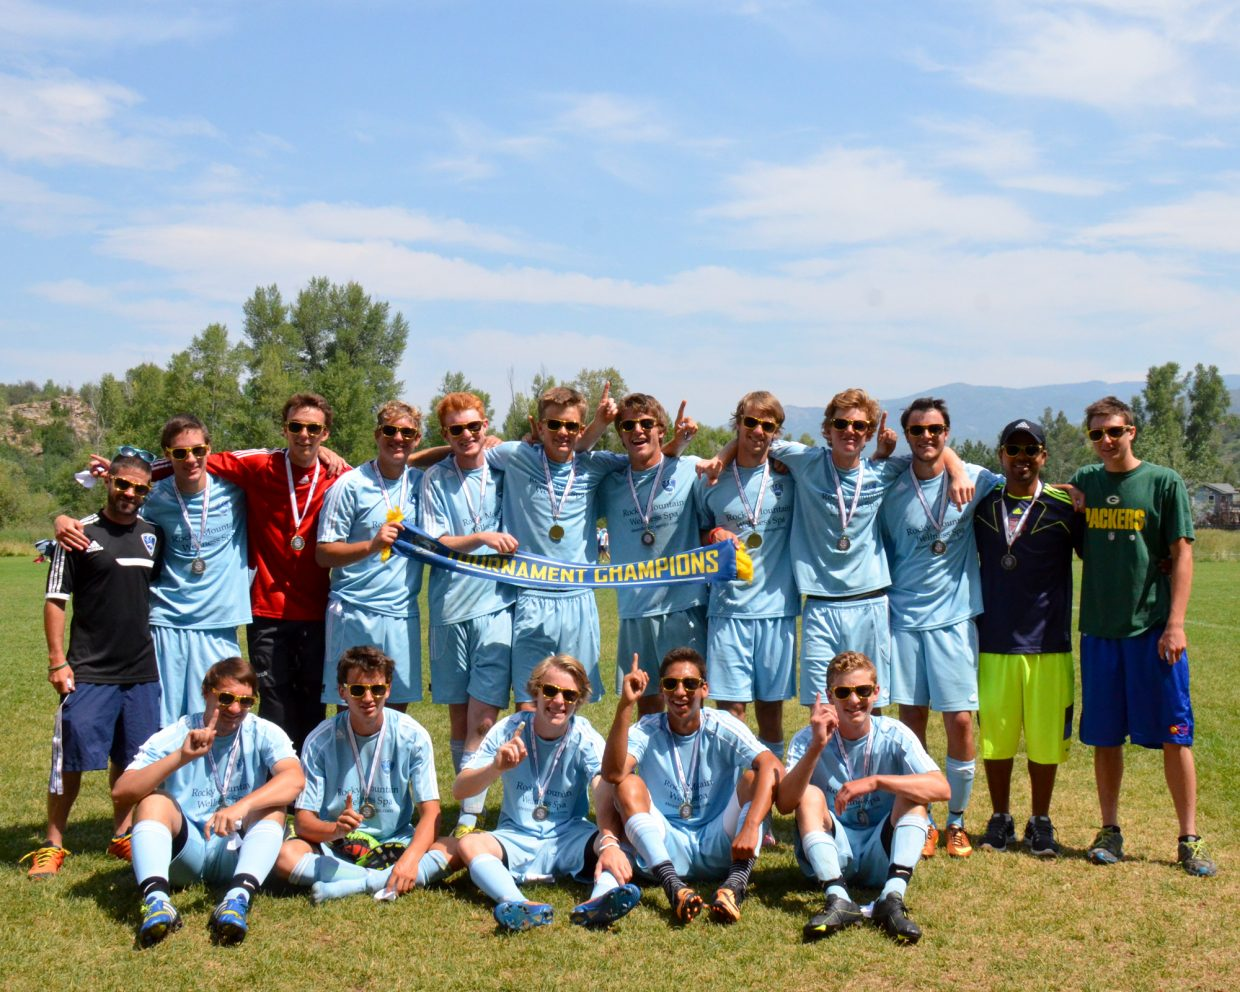 Steamboat Soccer Club U19B win the Championship game against Red Hot (UT) 1-0. Submitted by: Jan DePuy